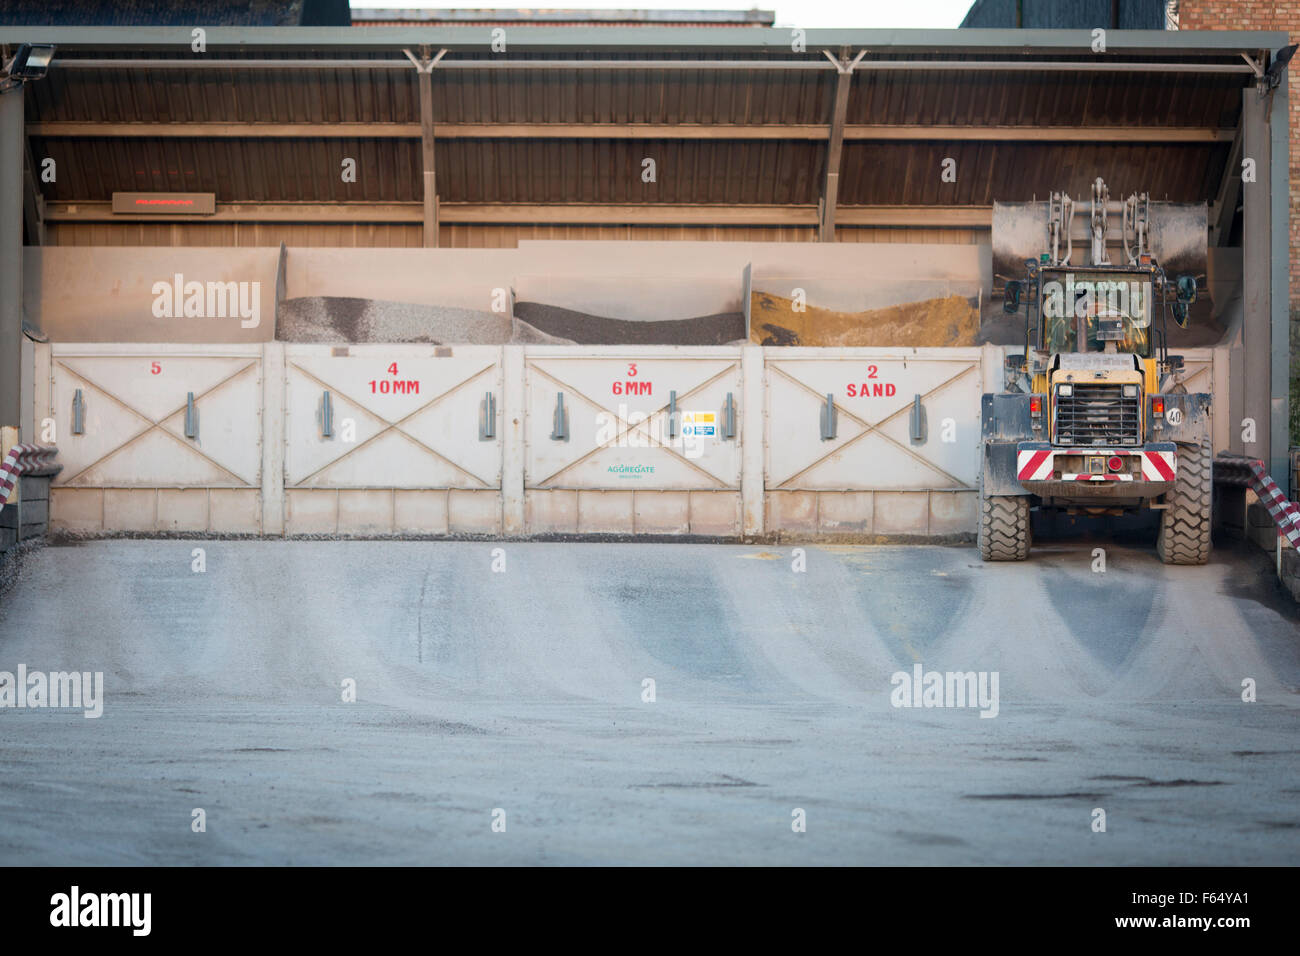 Aggregate Industries Express Asphalt Plant in Doncaster - Stock Image